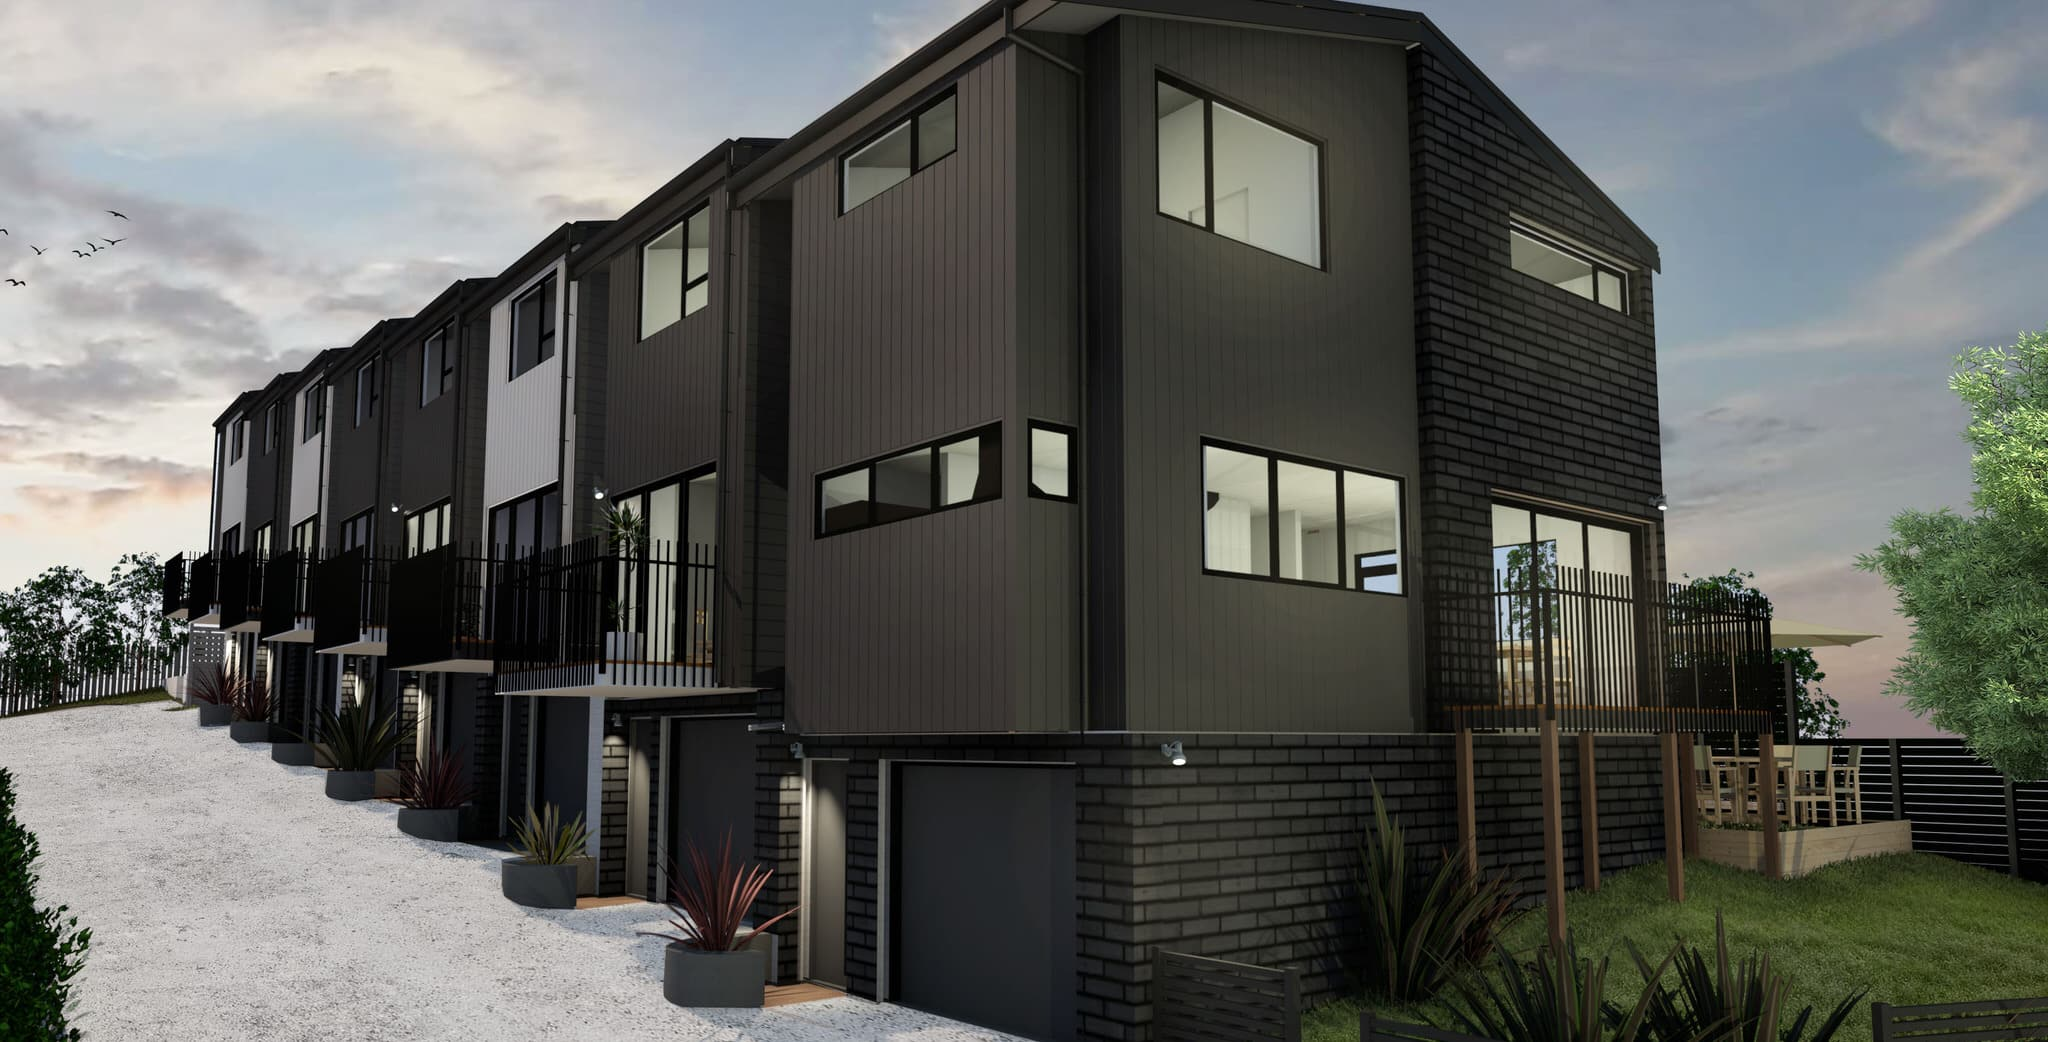 Glendowie Terraced Housing, Auckland - front view 1